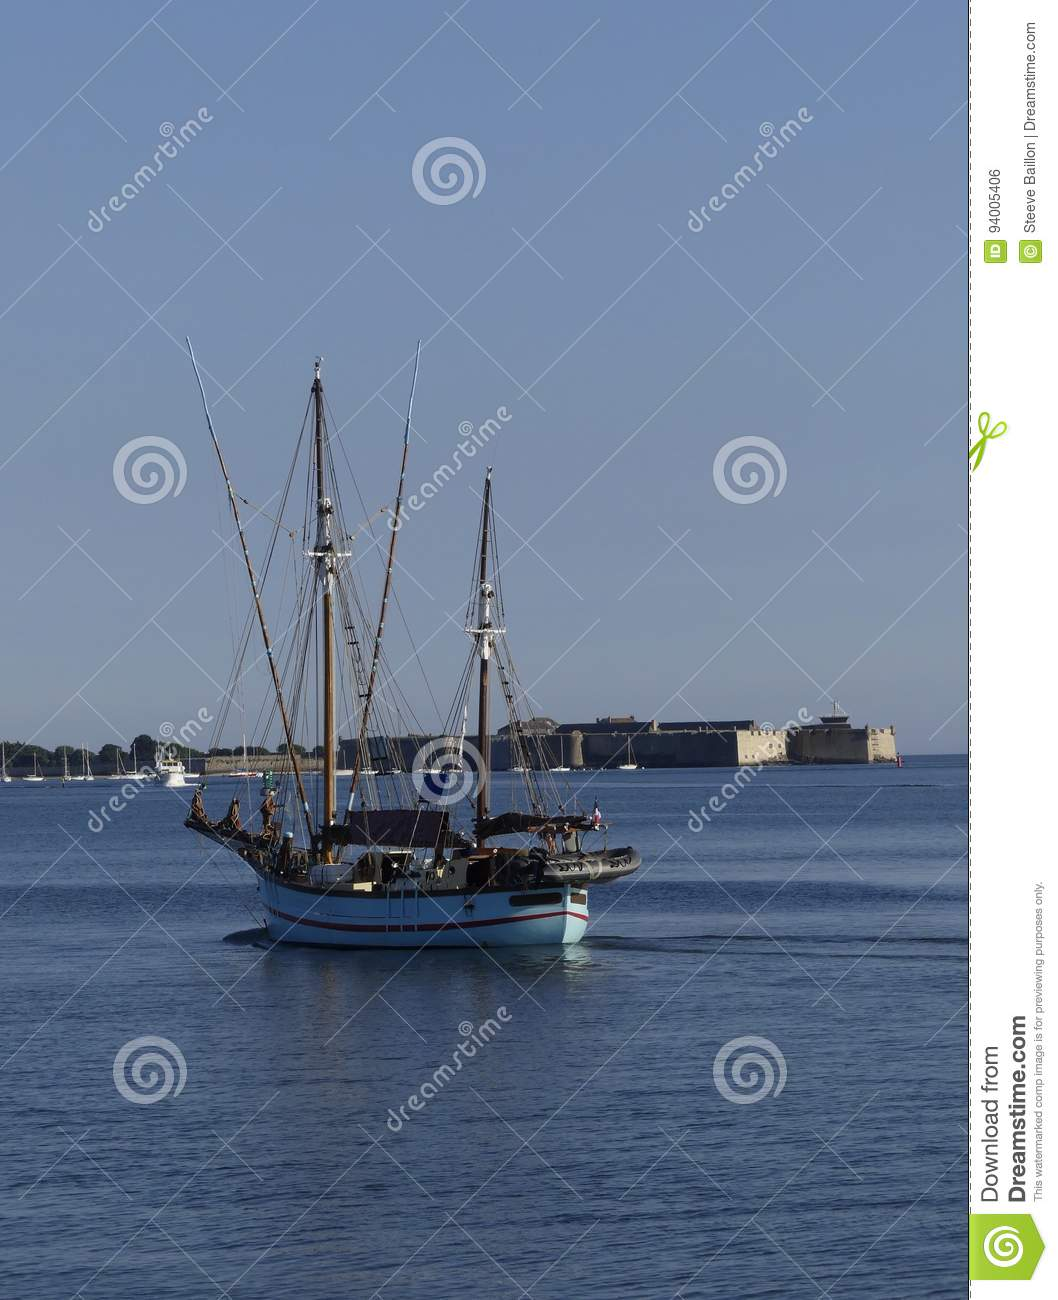 Old Wooden Sailing Boat Underway At Sea Stock Photo Image Of Ropes